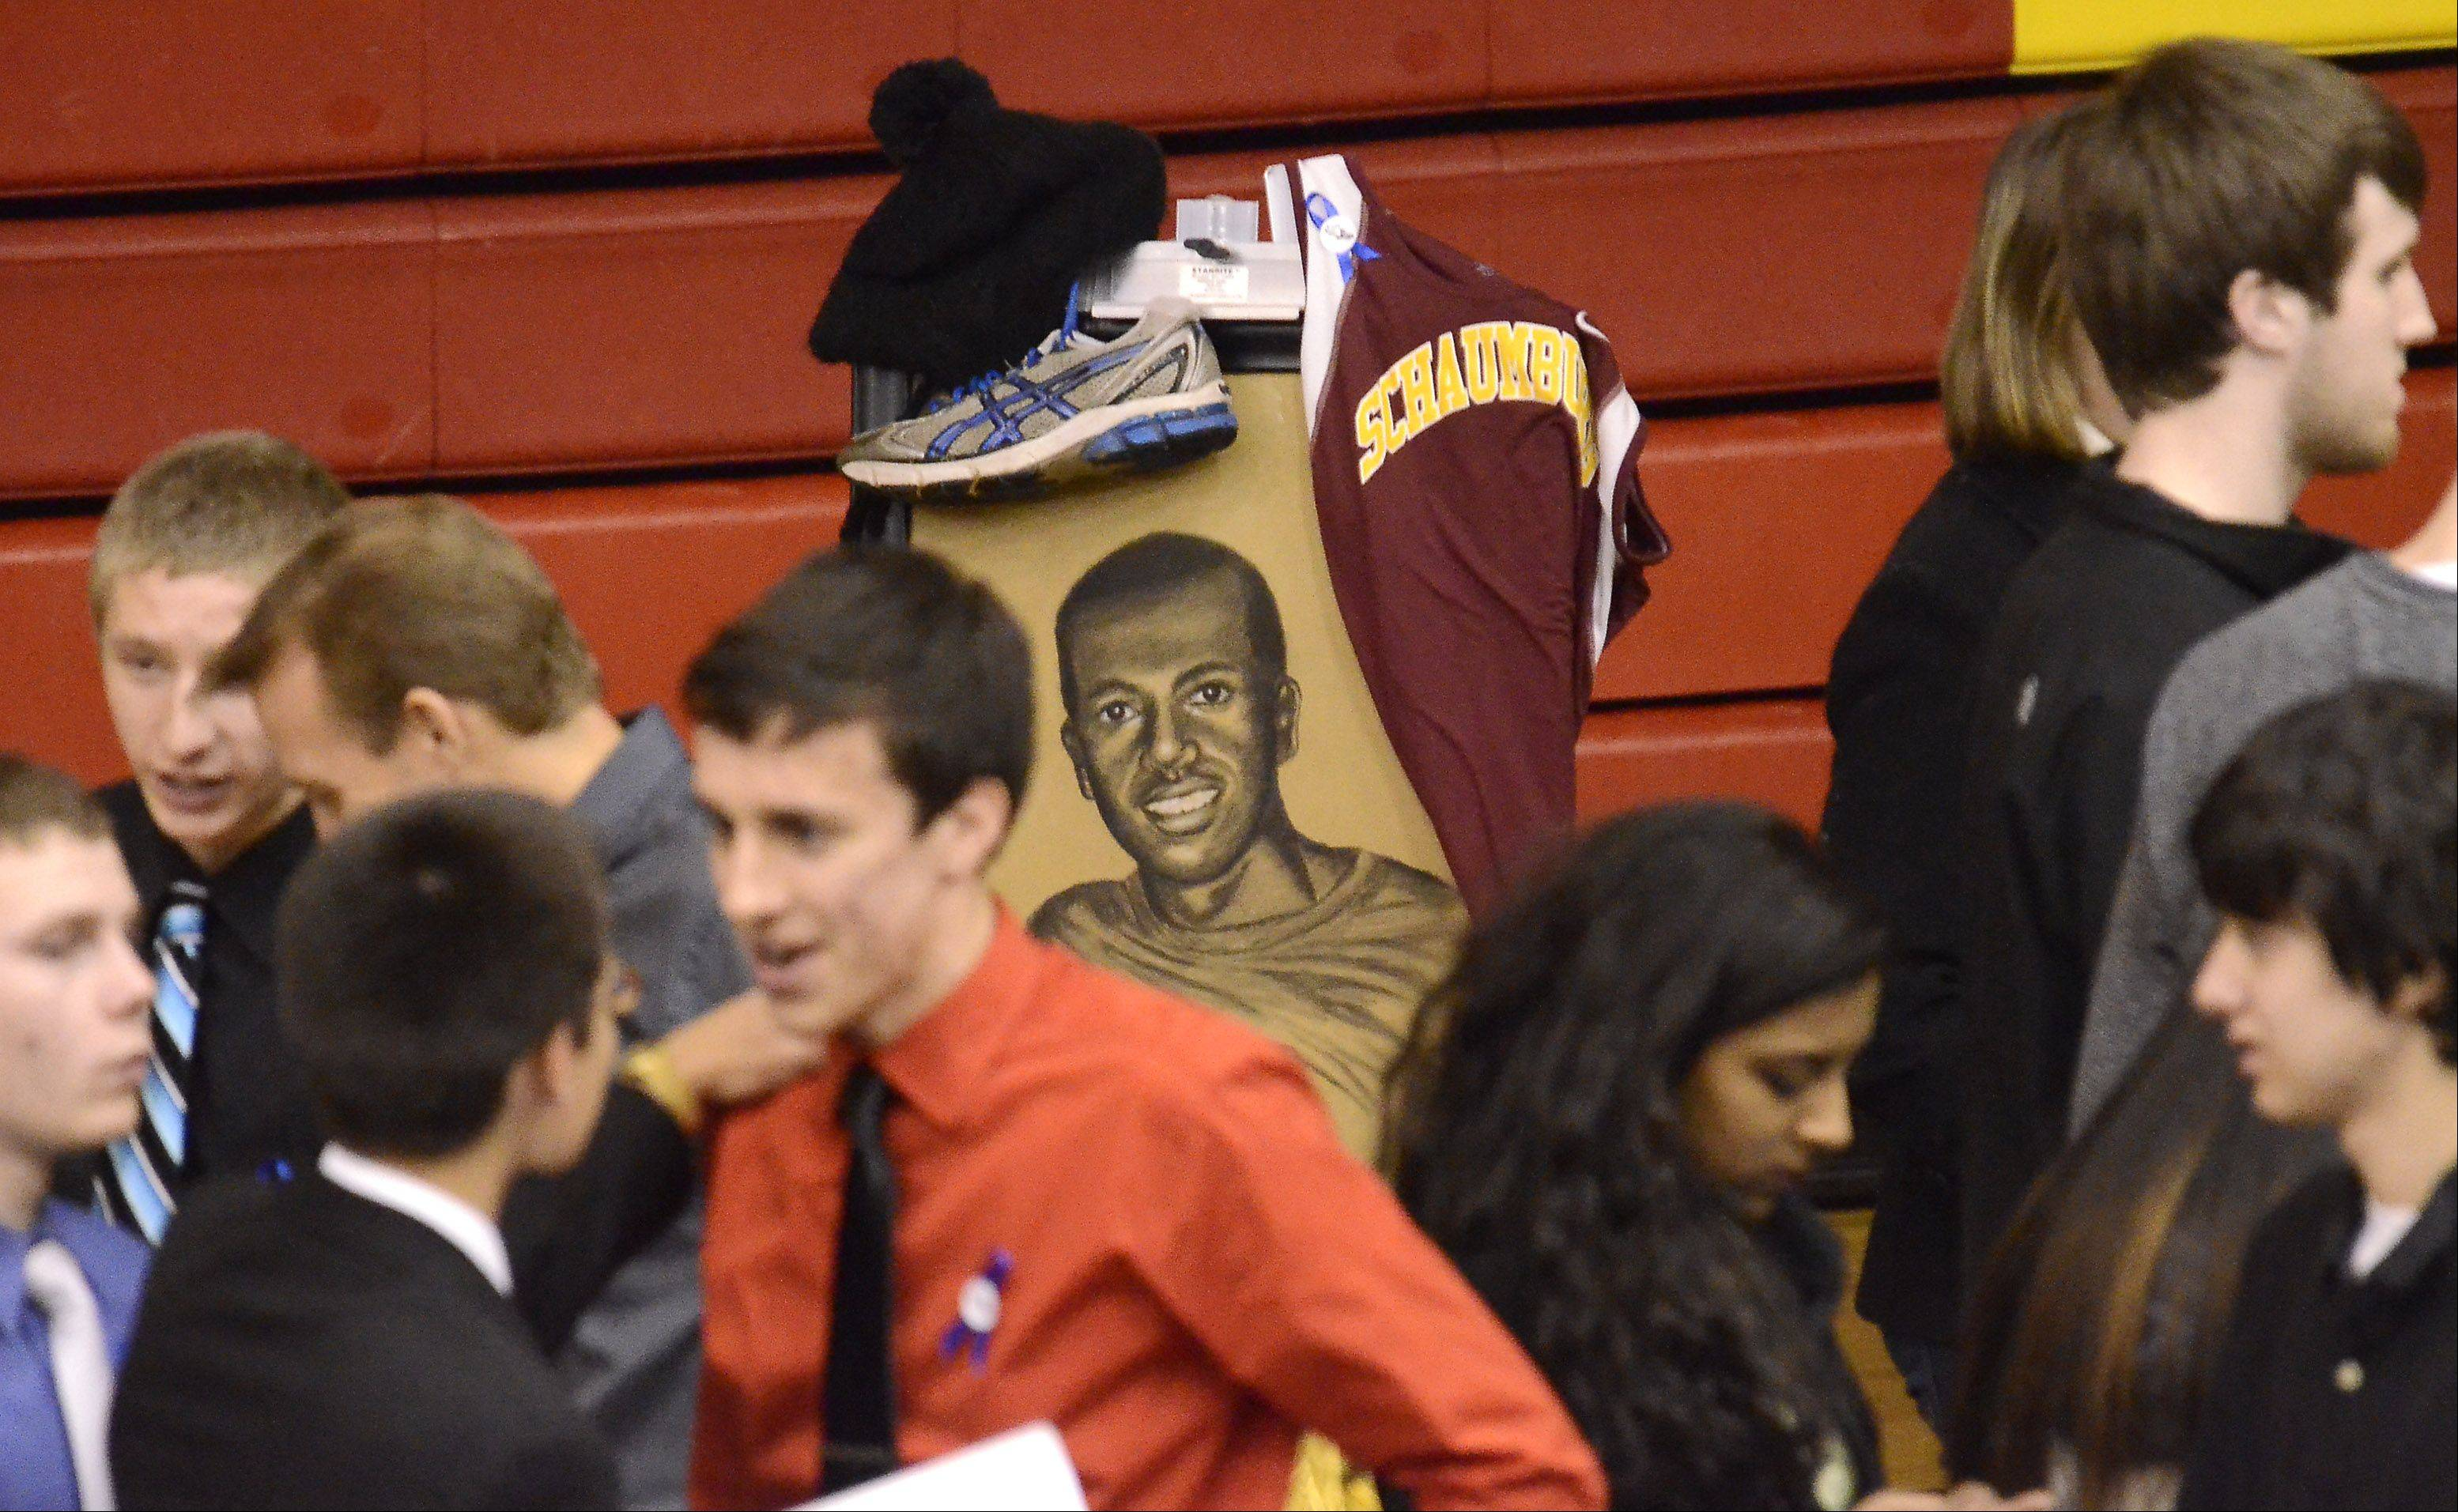 A portrait of Schaumburg High School student Mikias Tibebu looks back at his friends and classmates at a memorial service for him Thursday in the school gym. The portrait was done by Olivia Zubko.